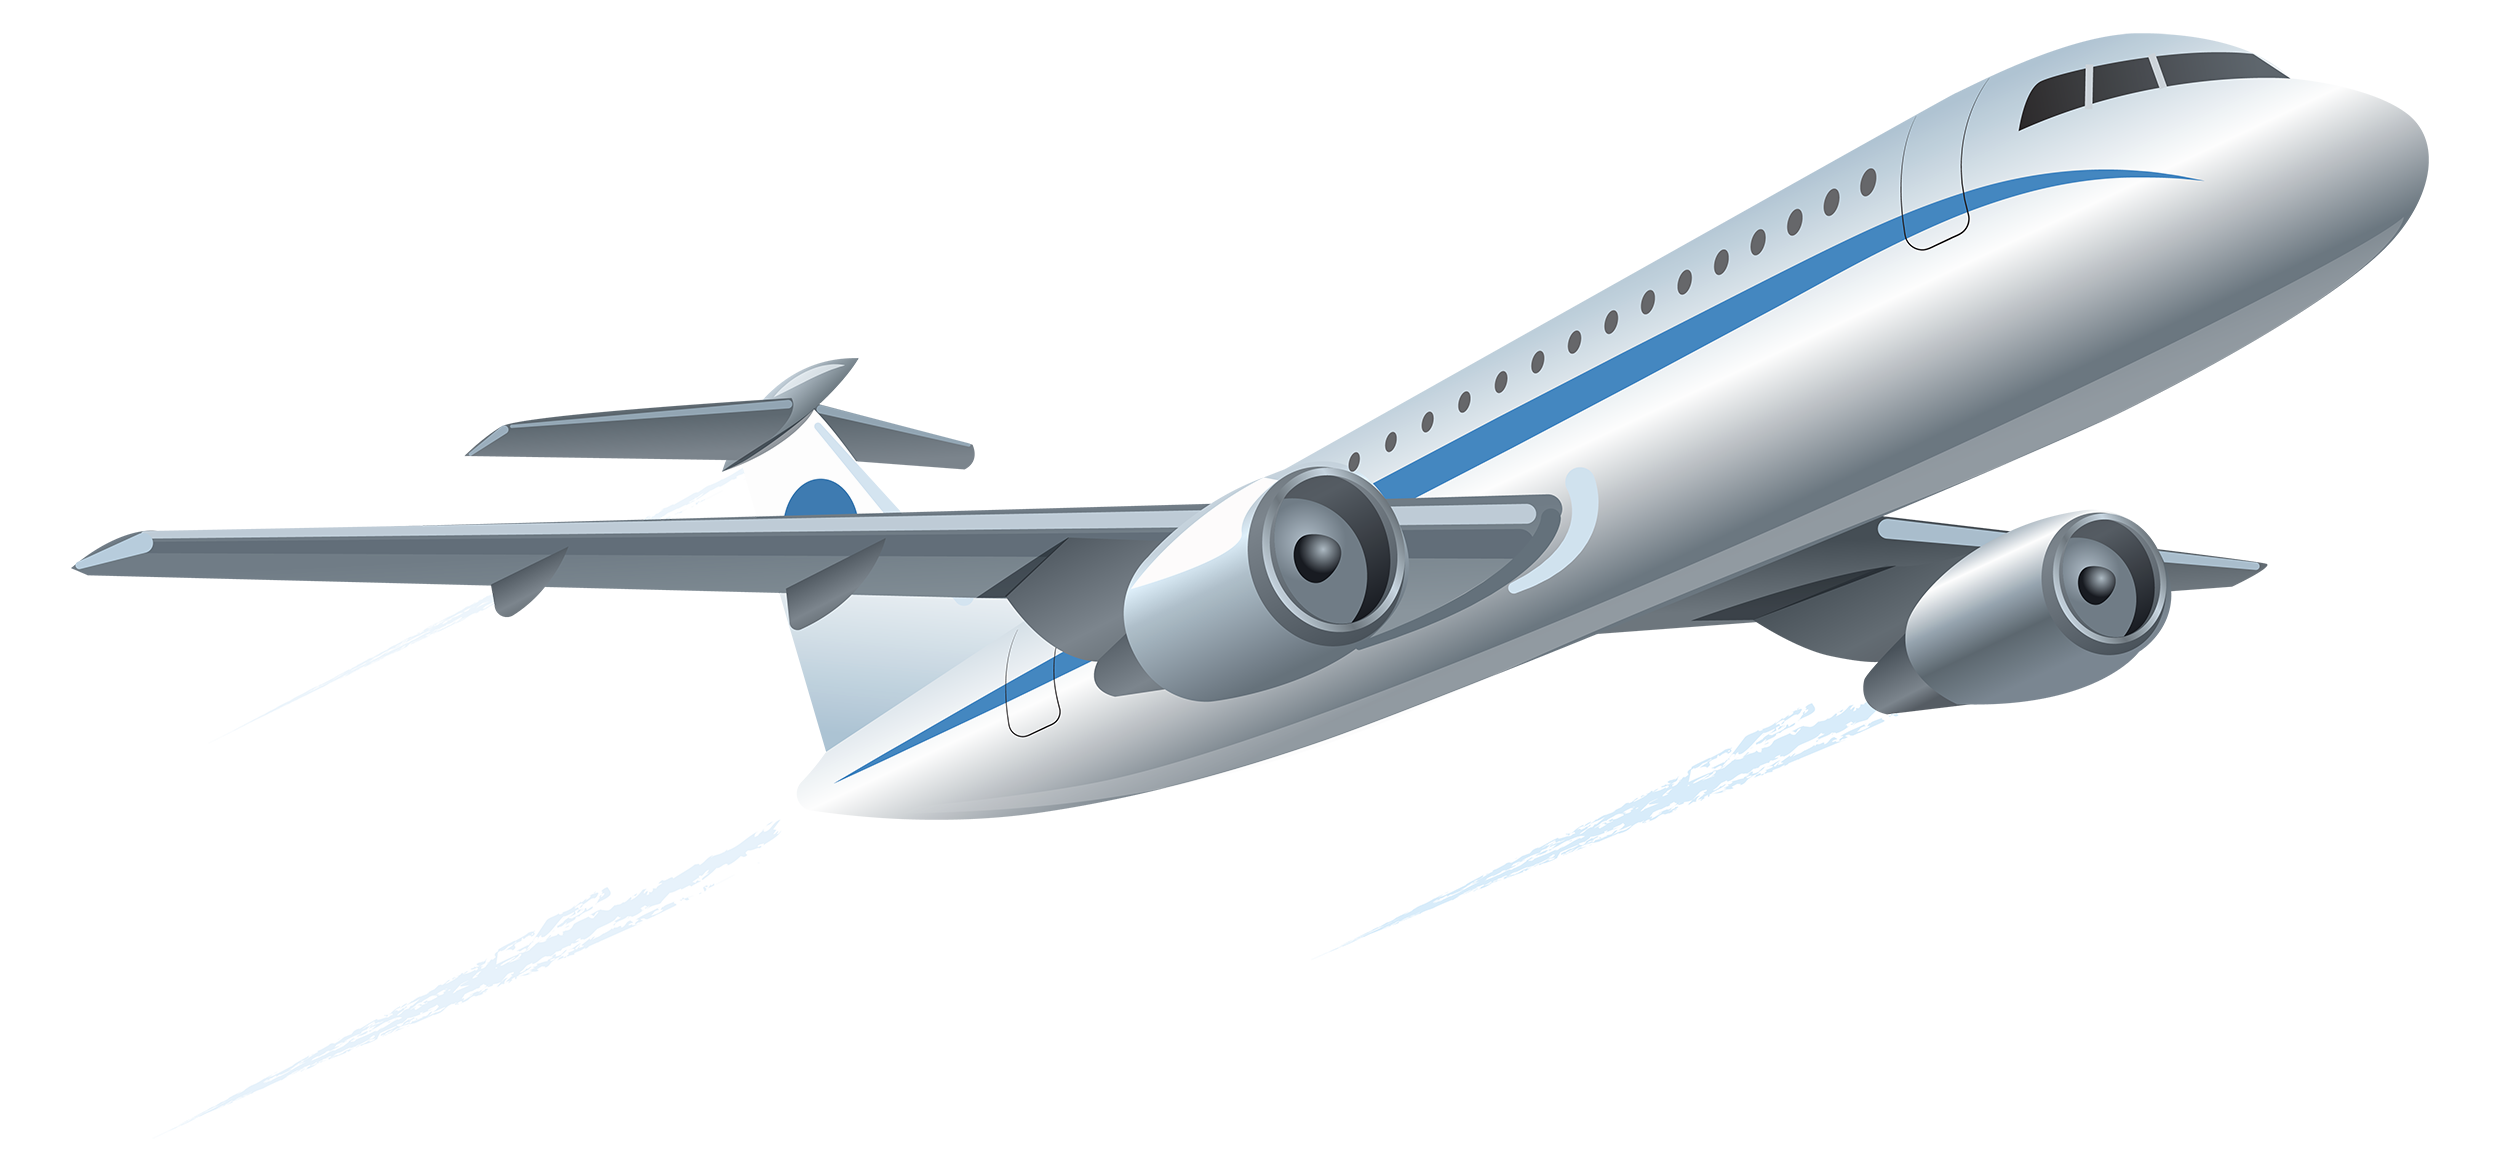 Airplane Clipart PNG Image